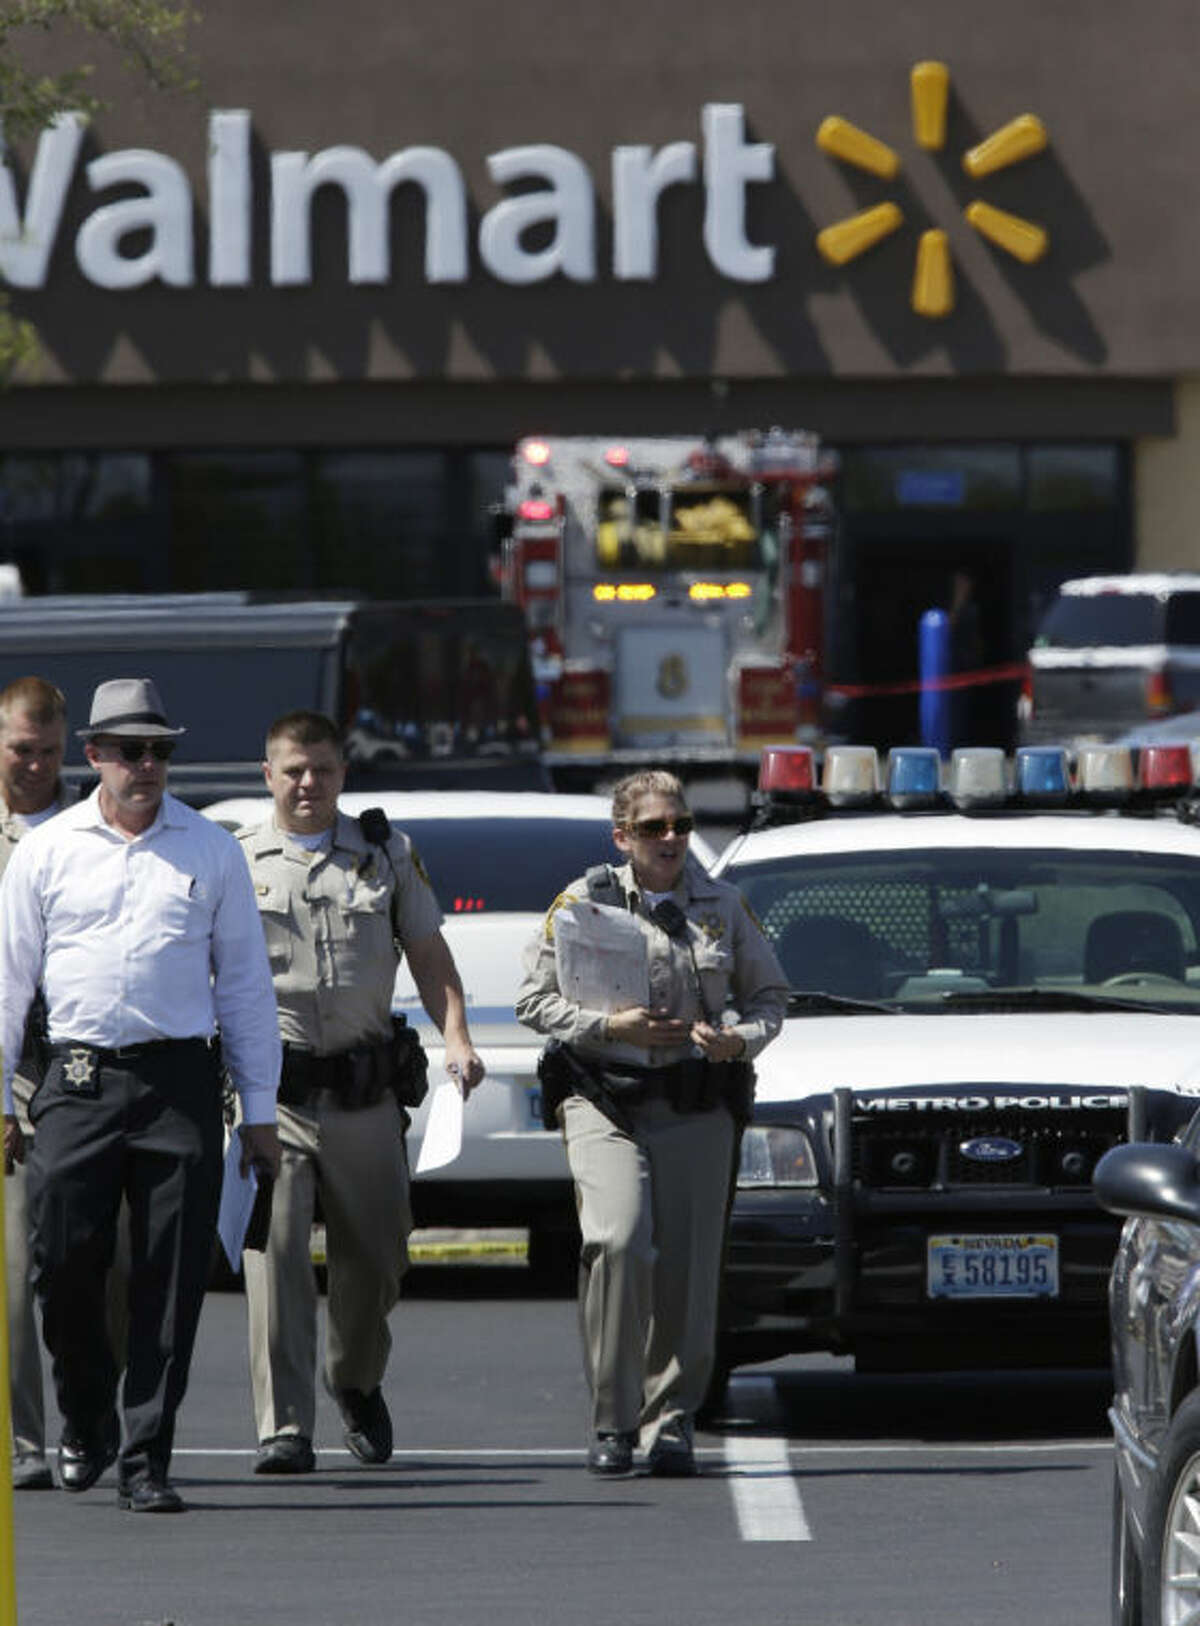 Las Vegas Metropolitan Police Department officers are at the scene of a shooting Sunday, June 8, 2014 in Las Vegas. Police say two suspects shot two officers at a Las Vegas pizza parlor before fatally shooting a person and turning the guns on themselves at a nearby Walmart. (AP Photo/John Locher)